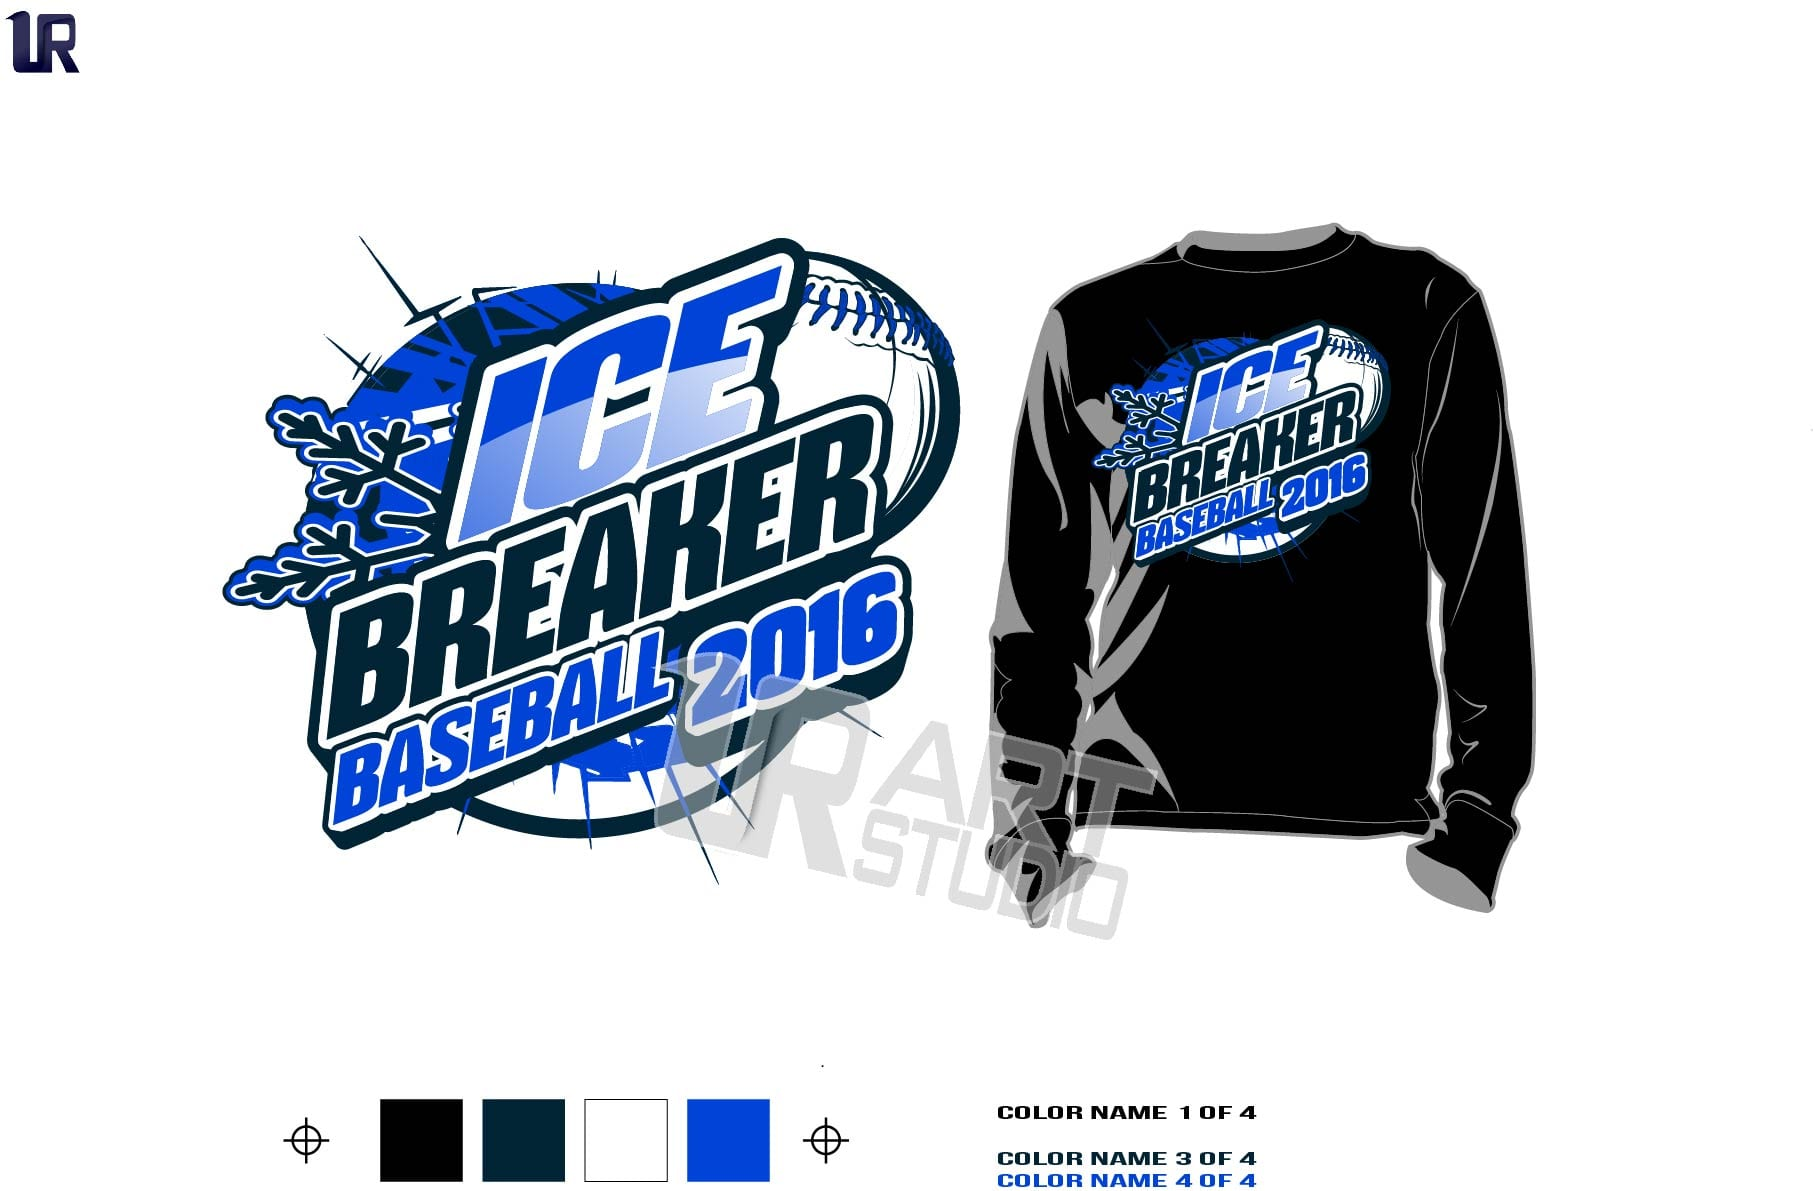 DOWNLOAD AWESOME ICE BREAKER BASEBALL TSHIRT VECTOR LOGO DESIGN COLOR SEPARATED 4 SPOT COLORS FOR